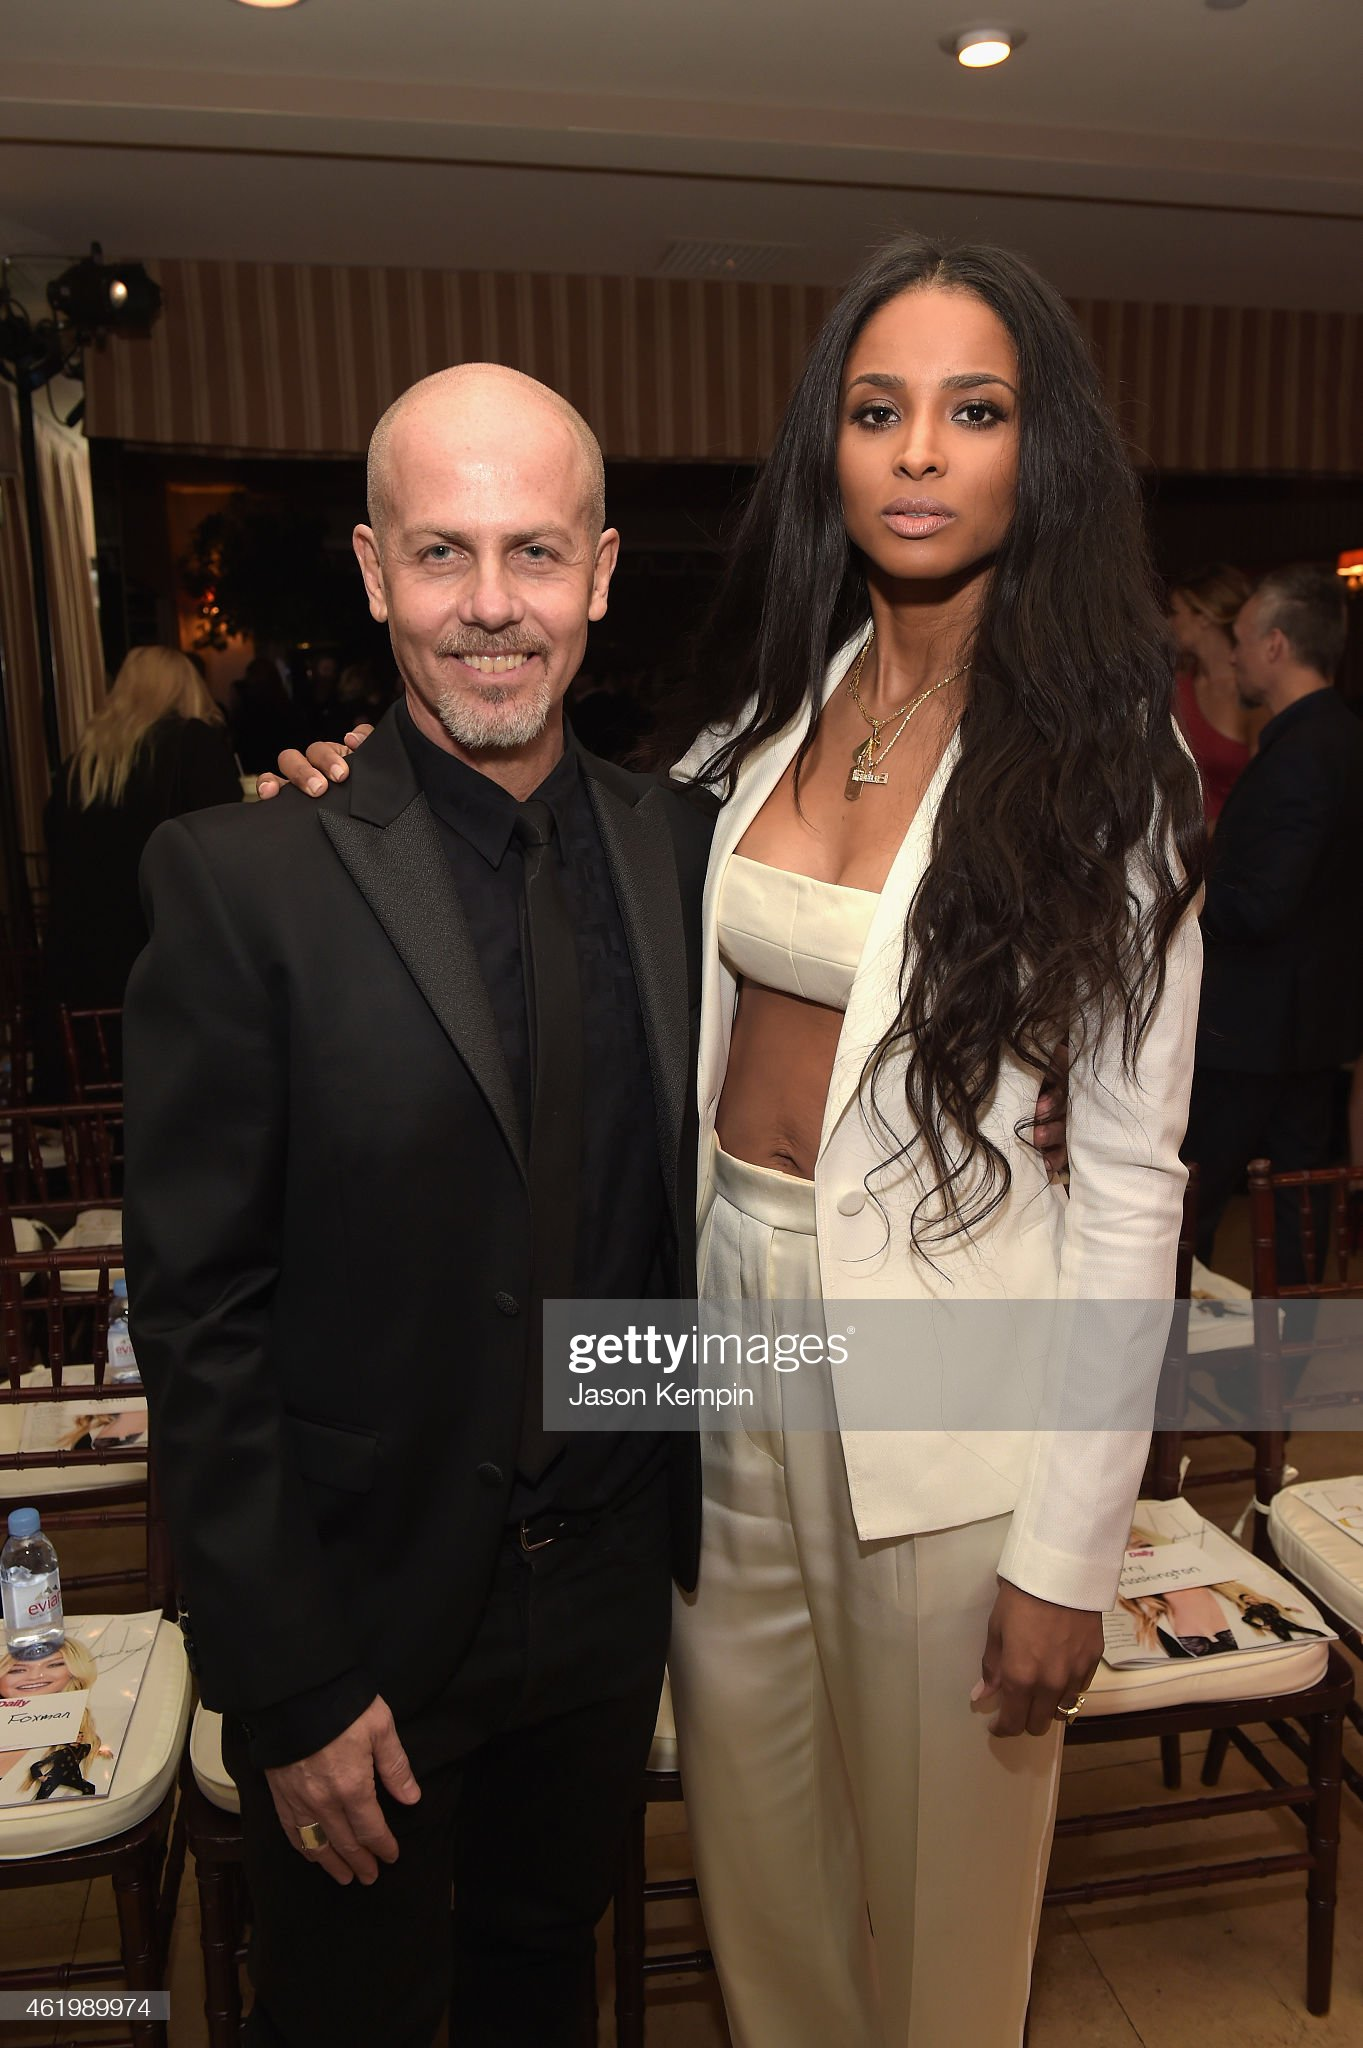 ¿Cuánto mide Ciara? - Real height Honoree-italo-zucchelli-and-singersongwriter-ciara-attend-the-daily-picture-id461989974?s=2048x2048